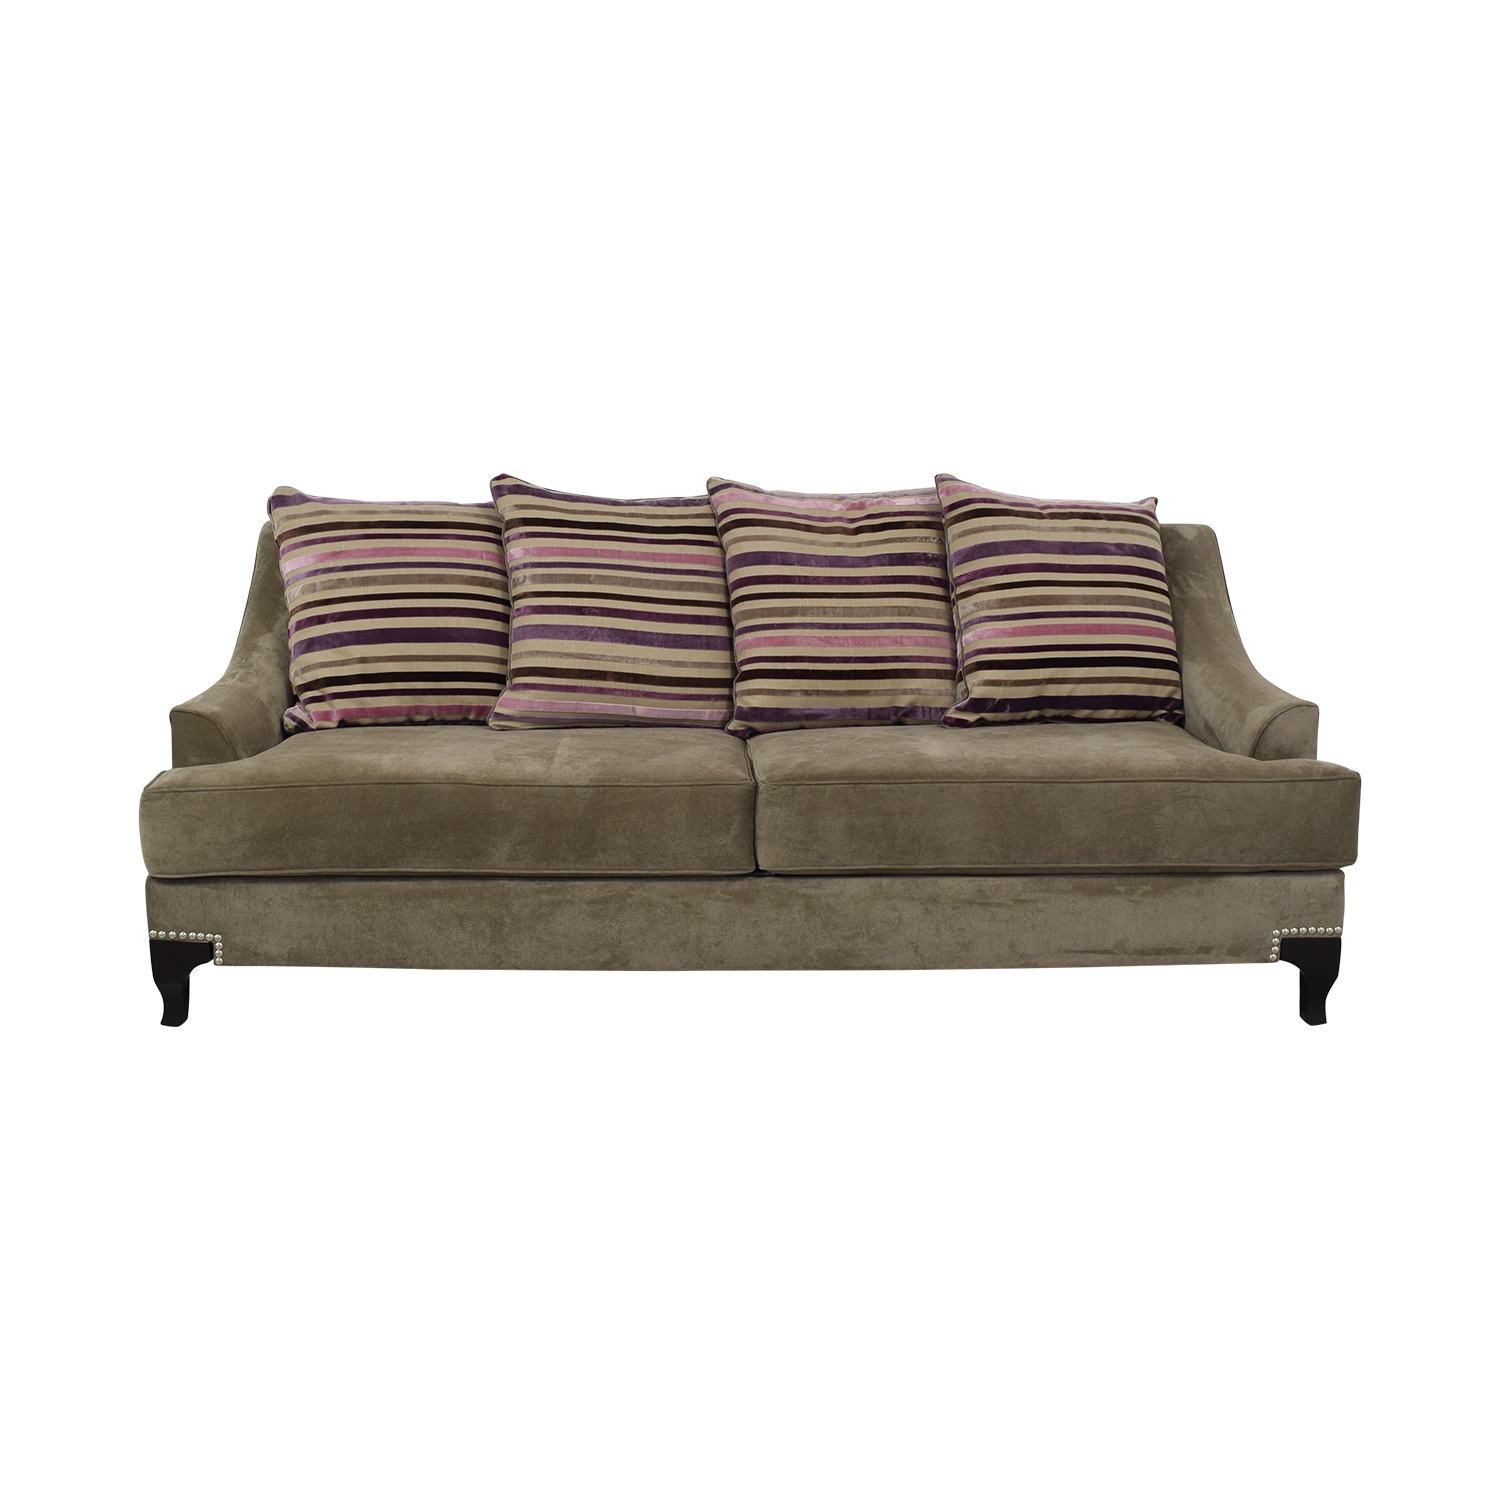 Furniture of America Furniture of America Classic Sofa for sale